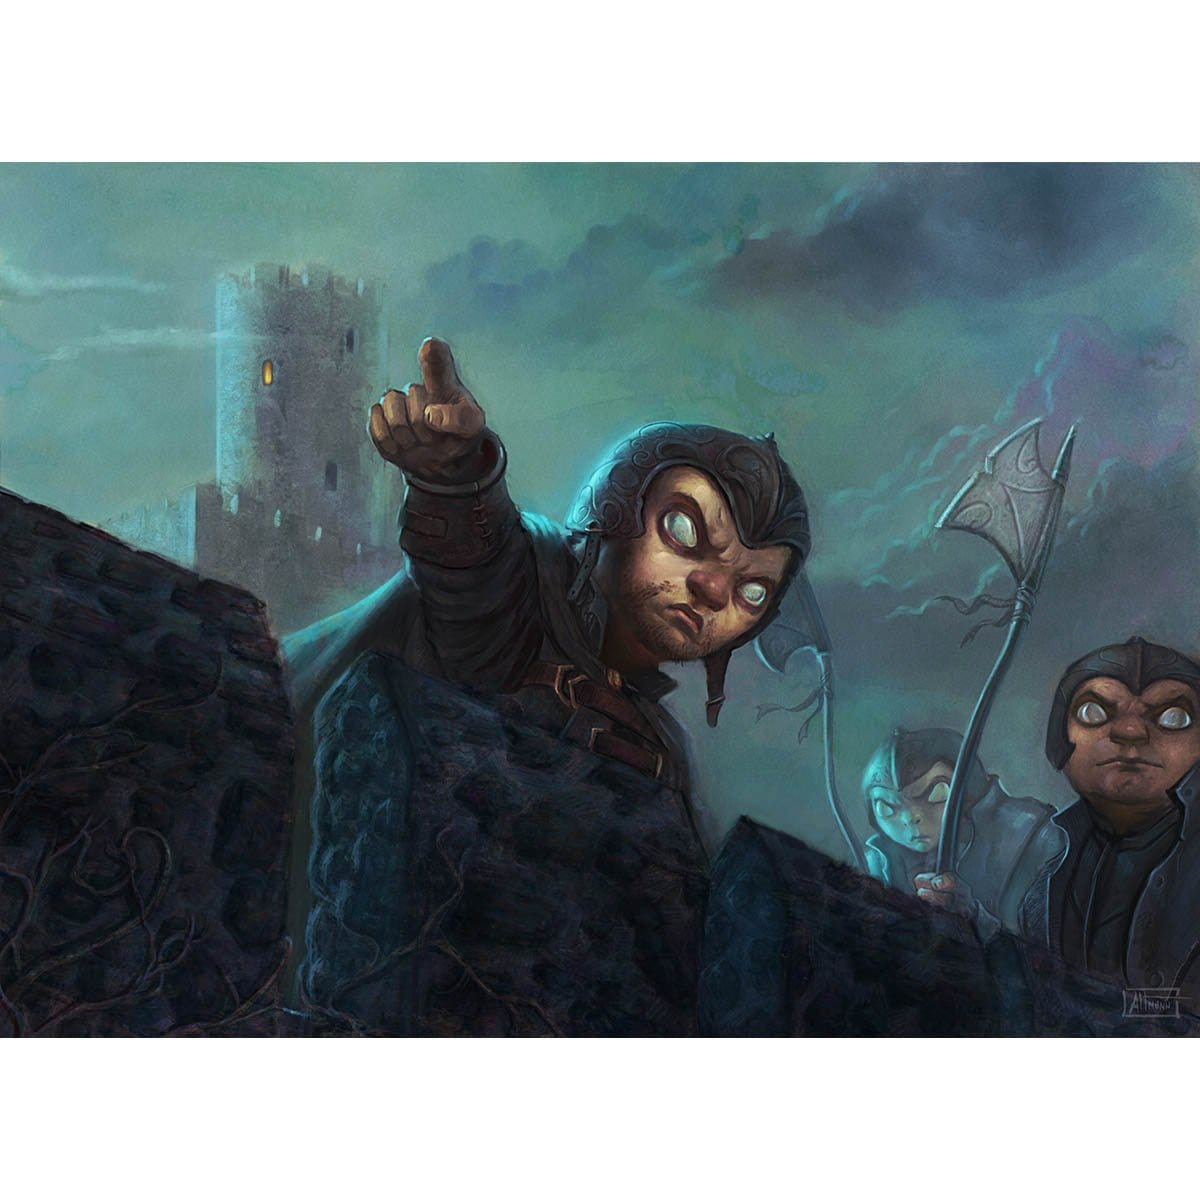 Parapet Watchers Print - Print - Original Magic Art - Accessories for Magic the Gathering and other card games